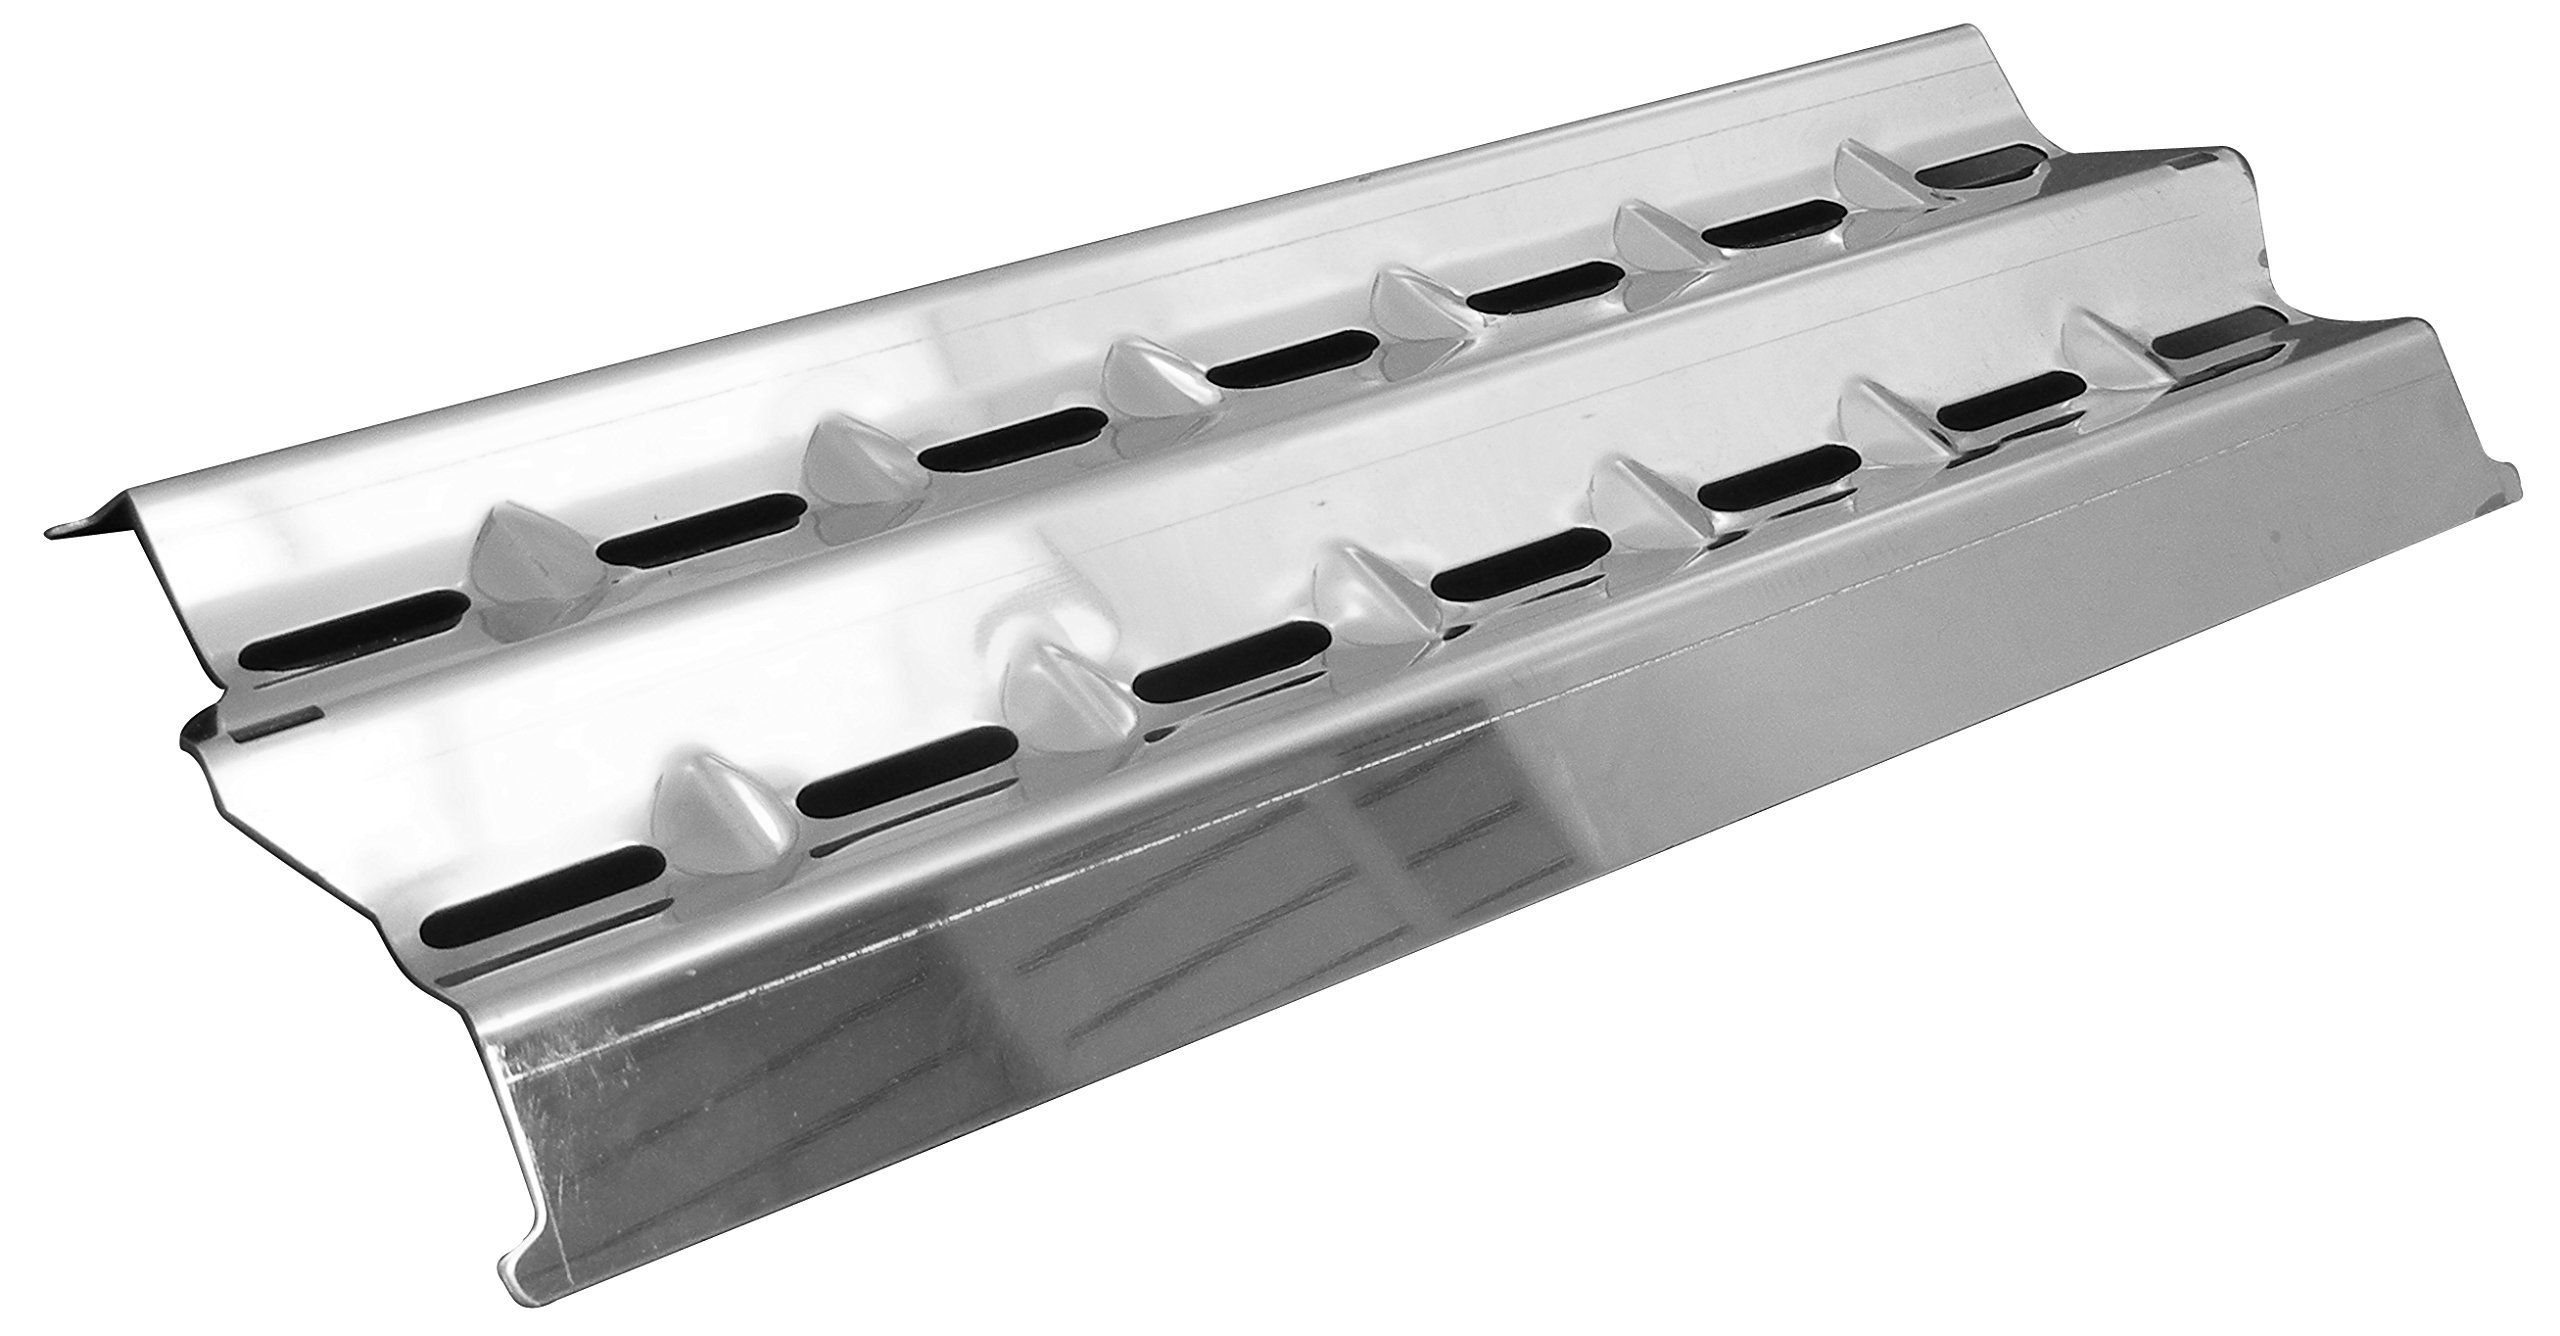 Music City Metals 94001 Stainless Steel Heat Plate Replacement for Select Broil King and Sterling Gas Grill Models